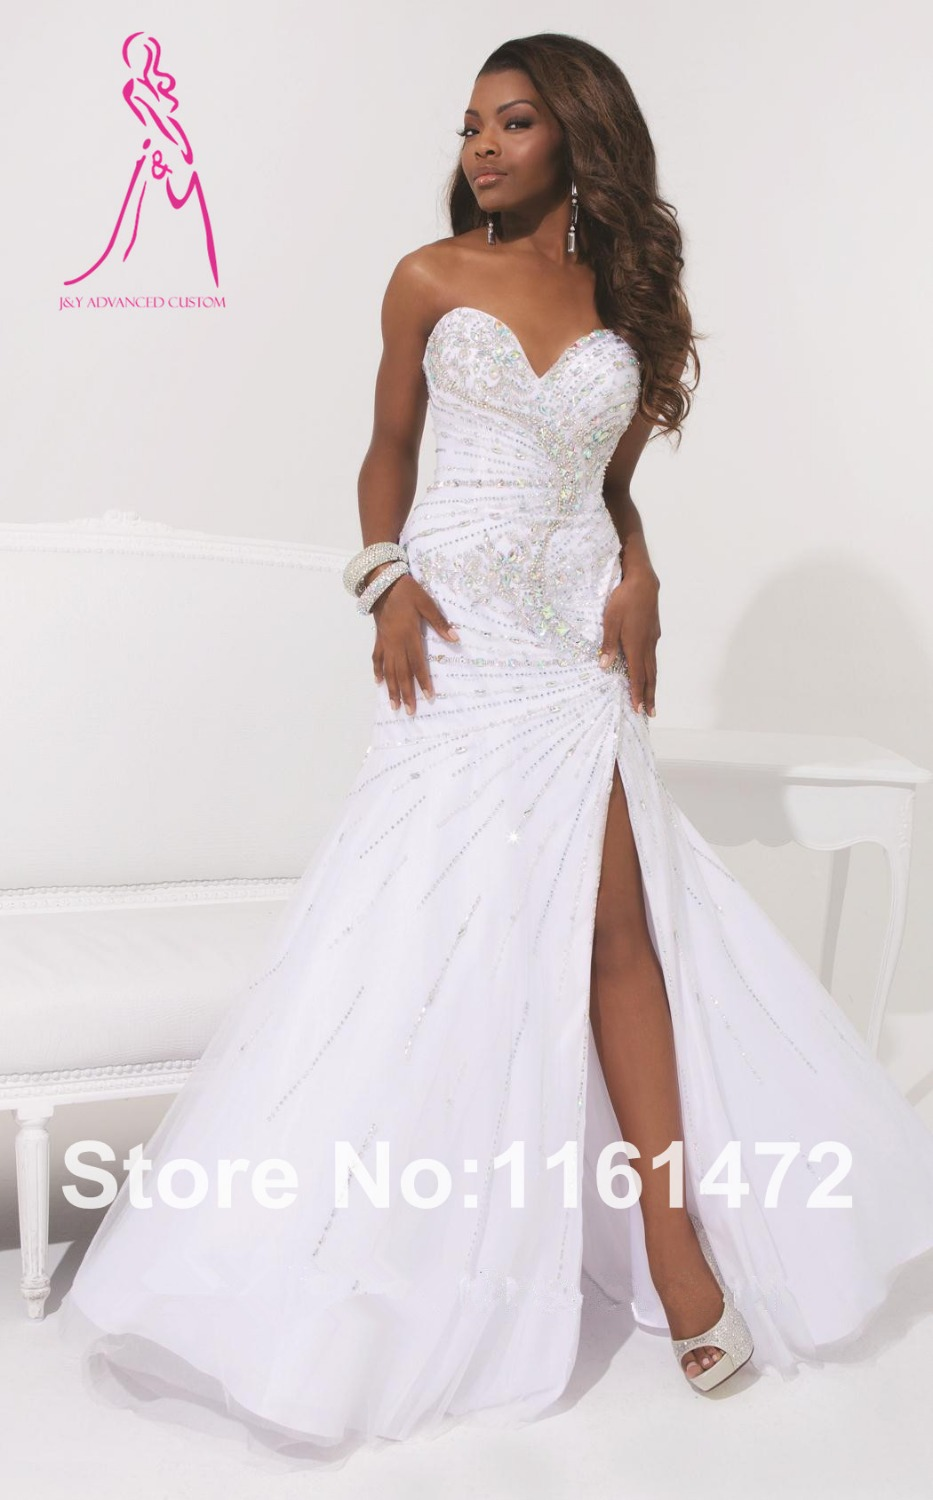 Vegas prom dresses discount evening dresses for Wedding dresses for rent las vegas